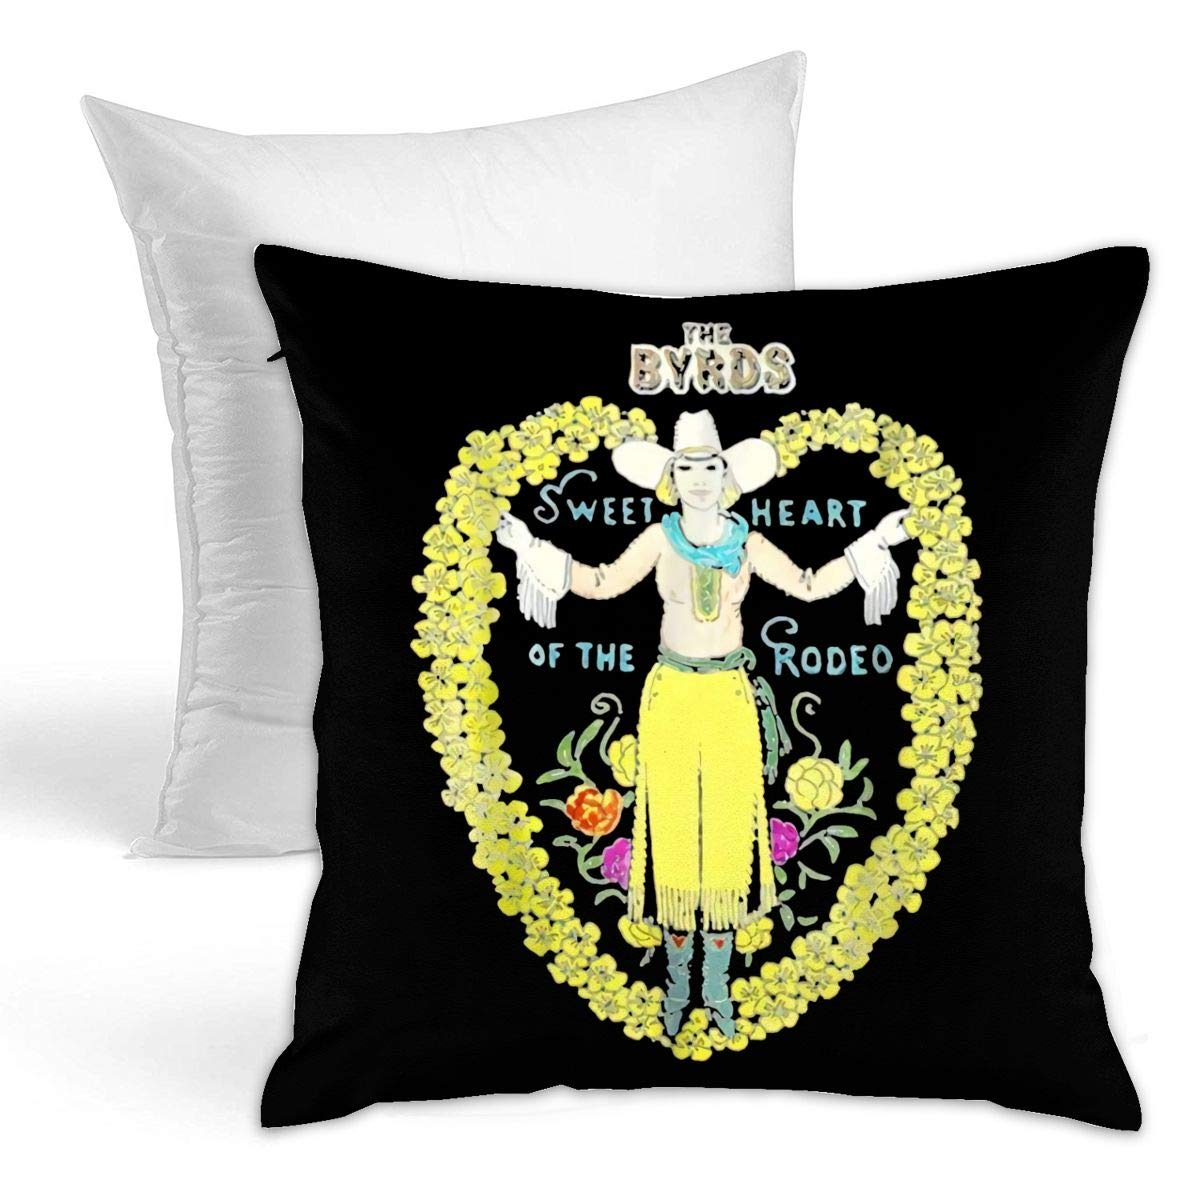 A/&B Home Anthony Venetucci 18-Inch Embroidered Throw Pillow Black